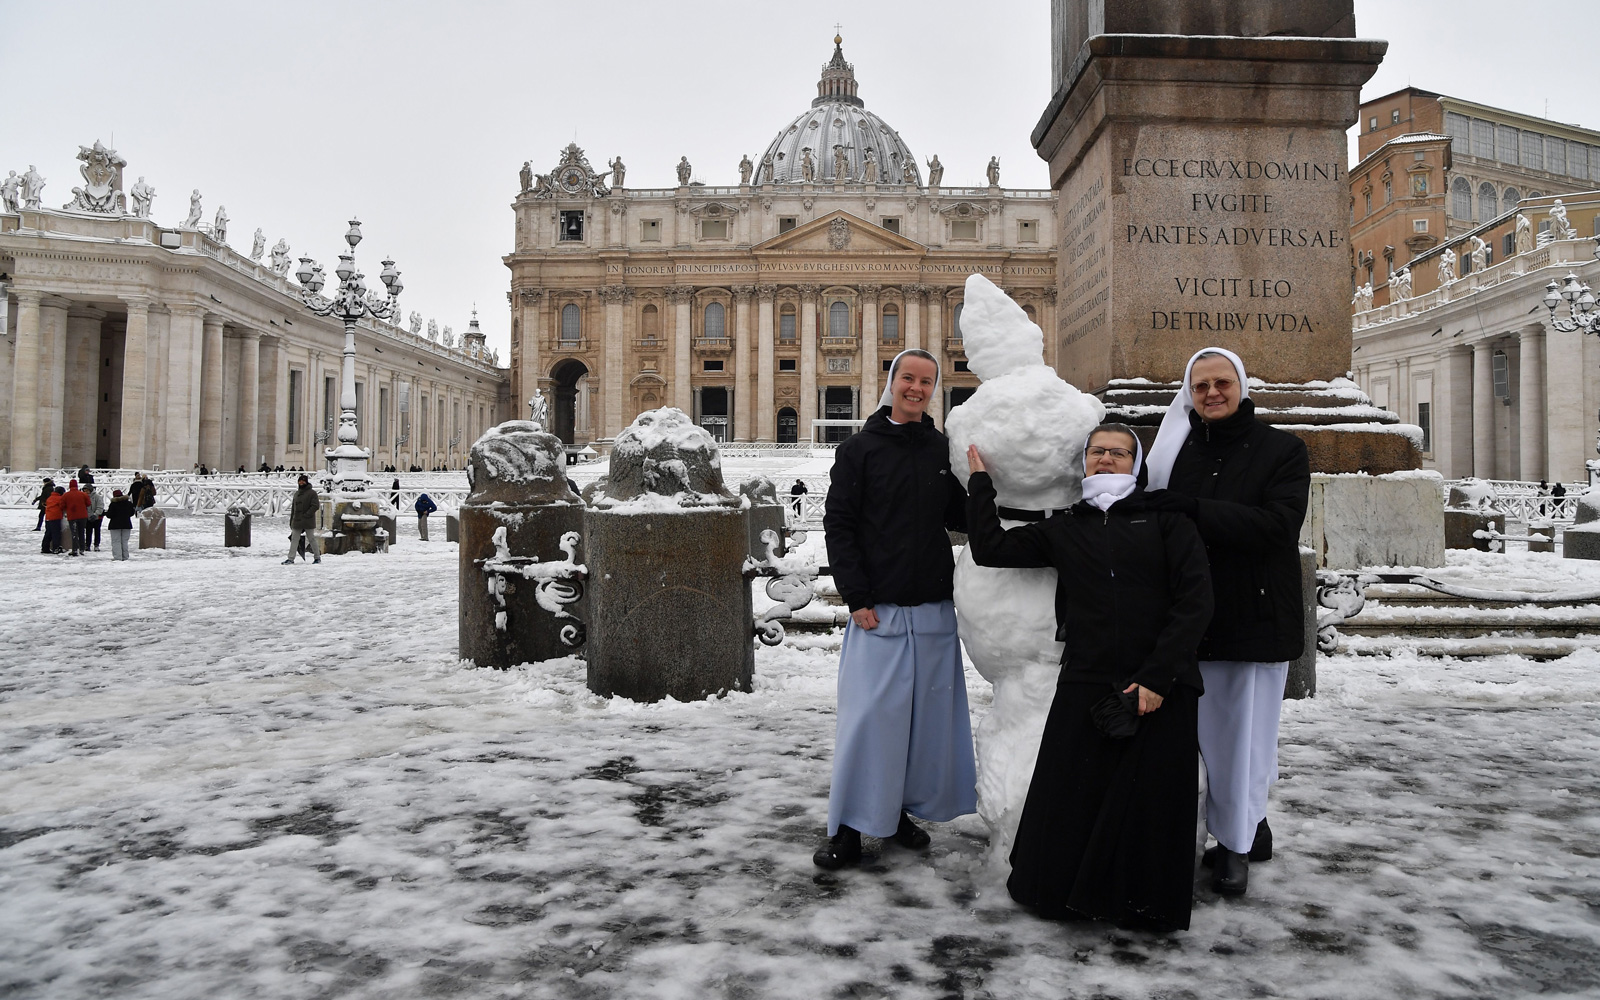 Priests Threw Snowballs and Nuns Built Snowmen During Rome's First Snow in Years